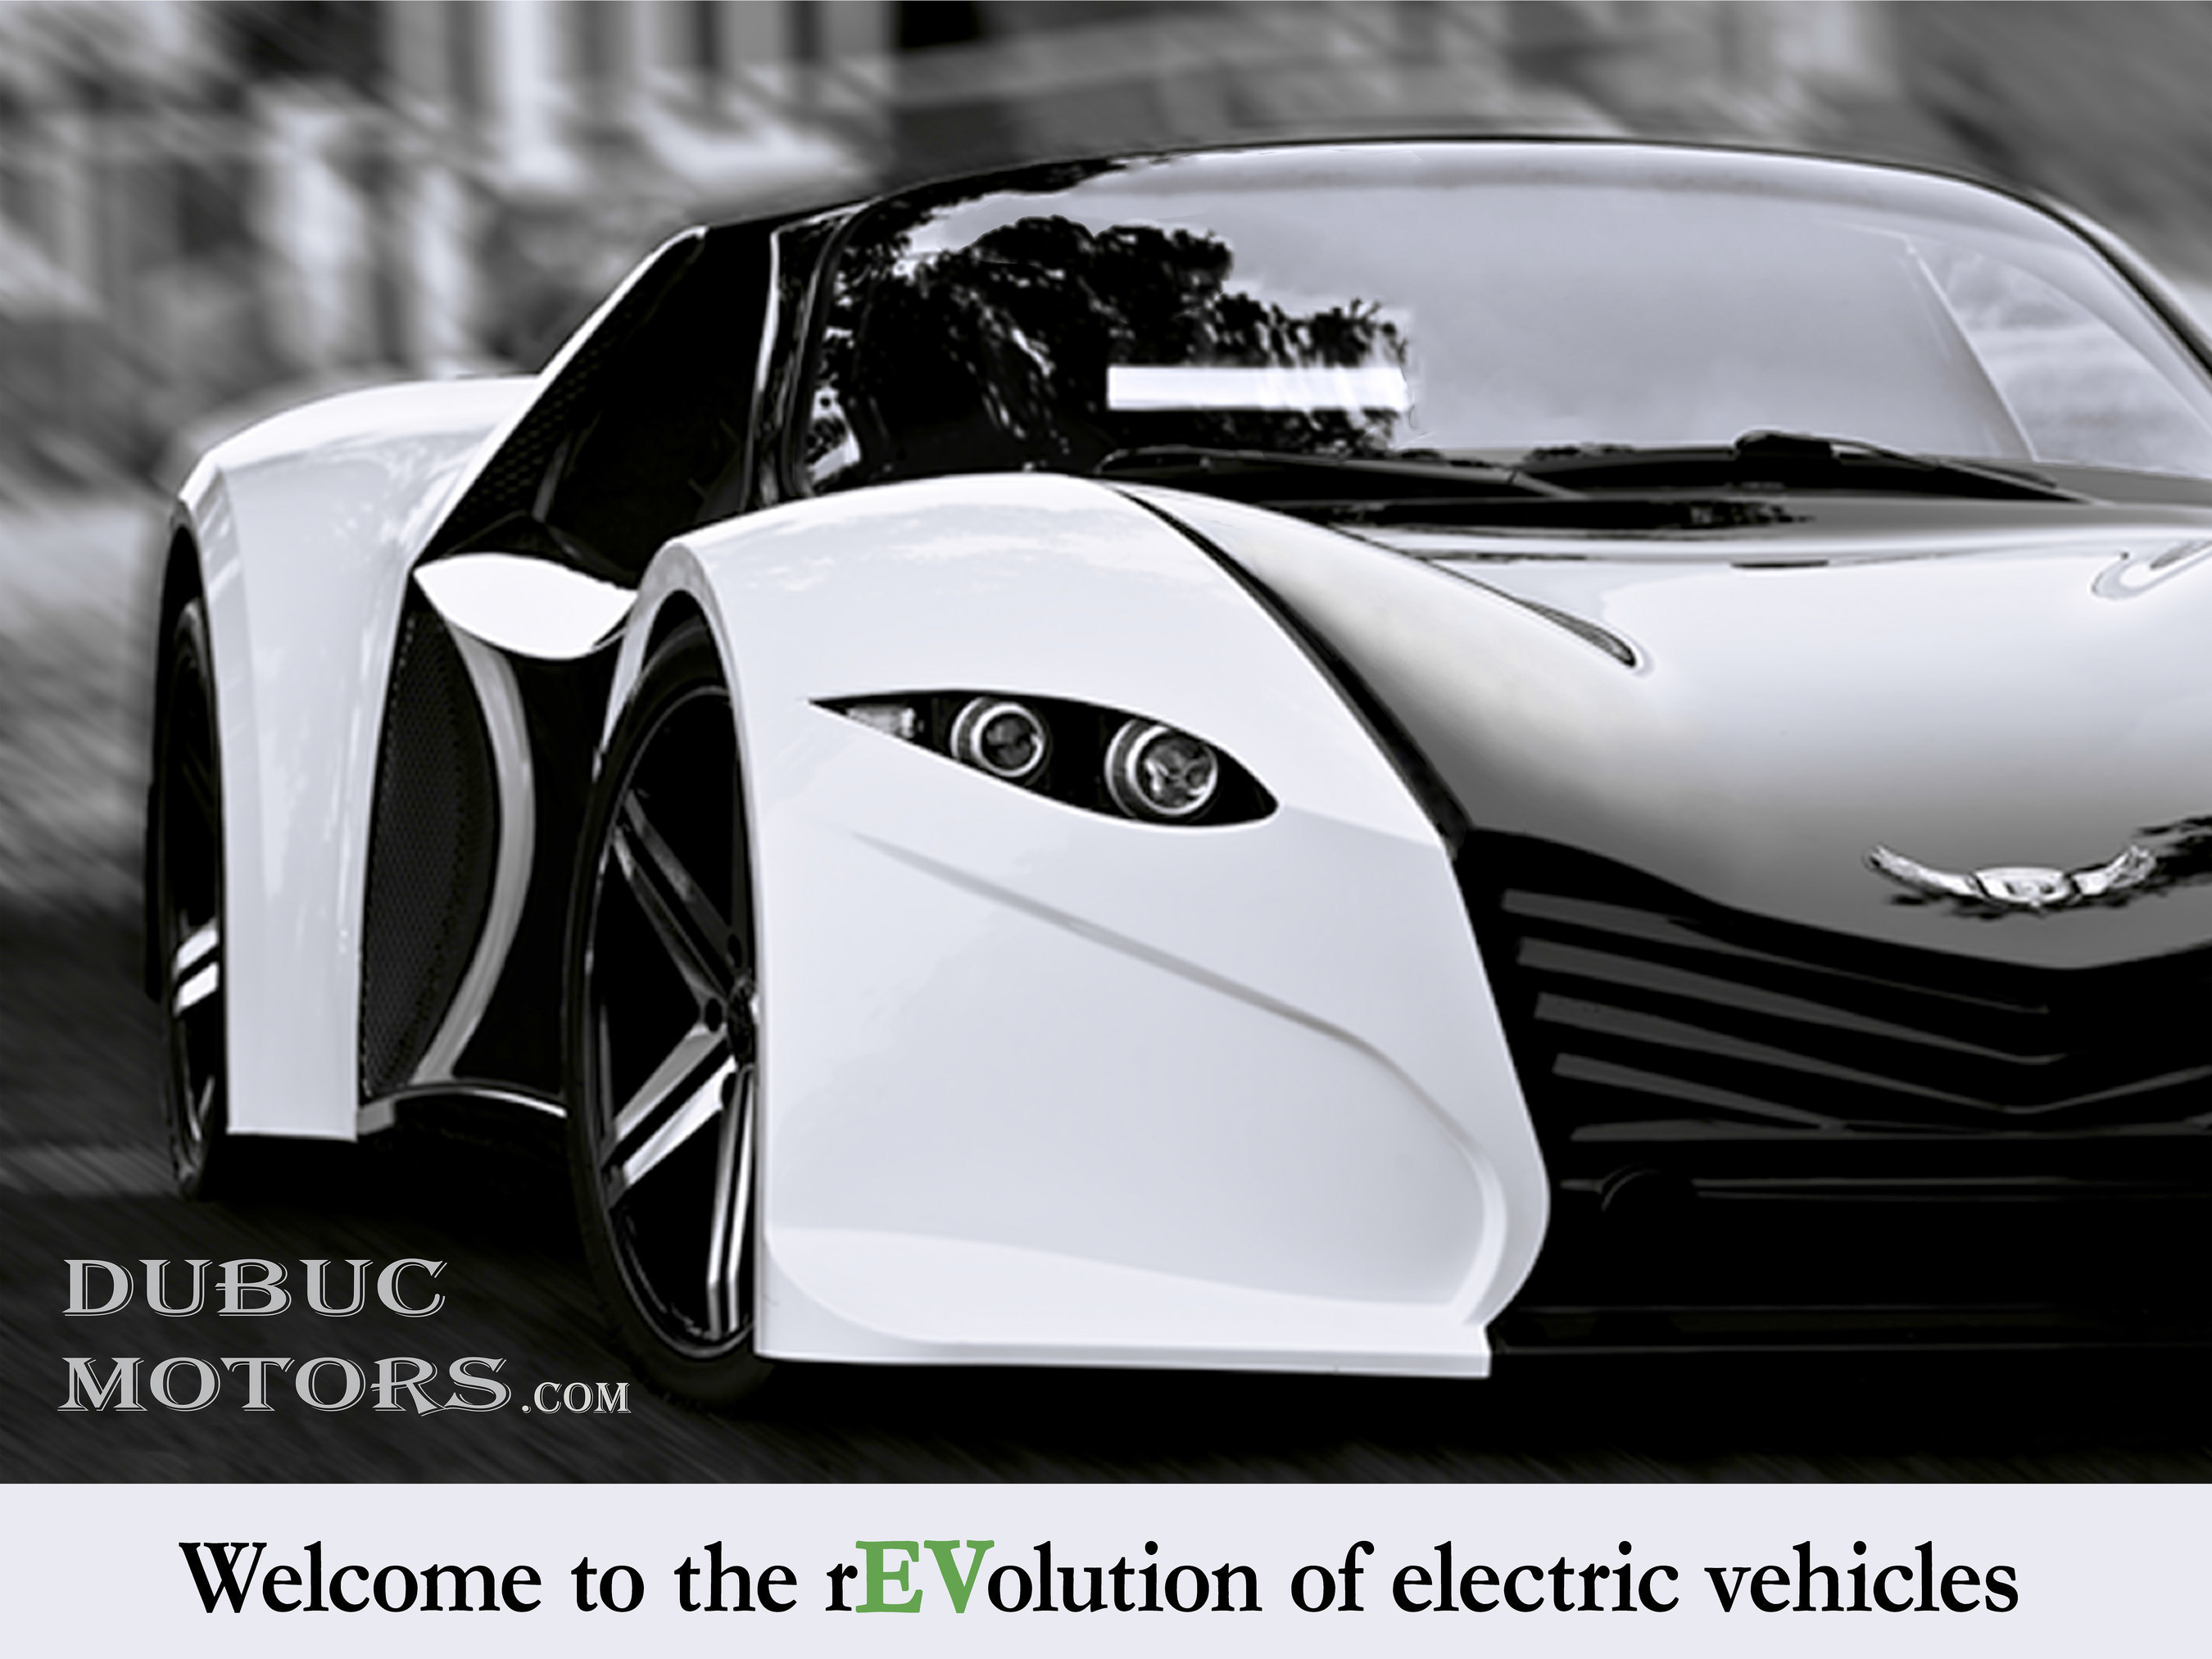 /R E P E A T -- Dubuc Motors Launches the First Electric Vehicle on StartEngine equity crowdfunding